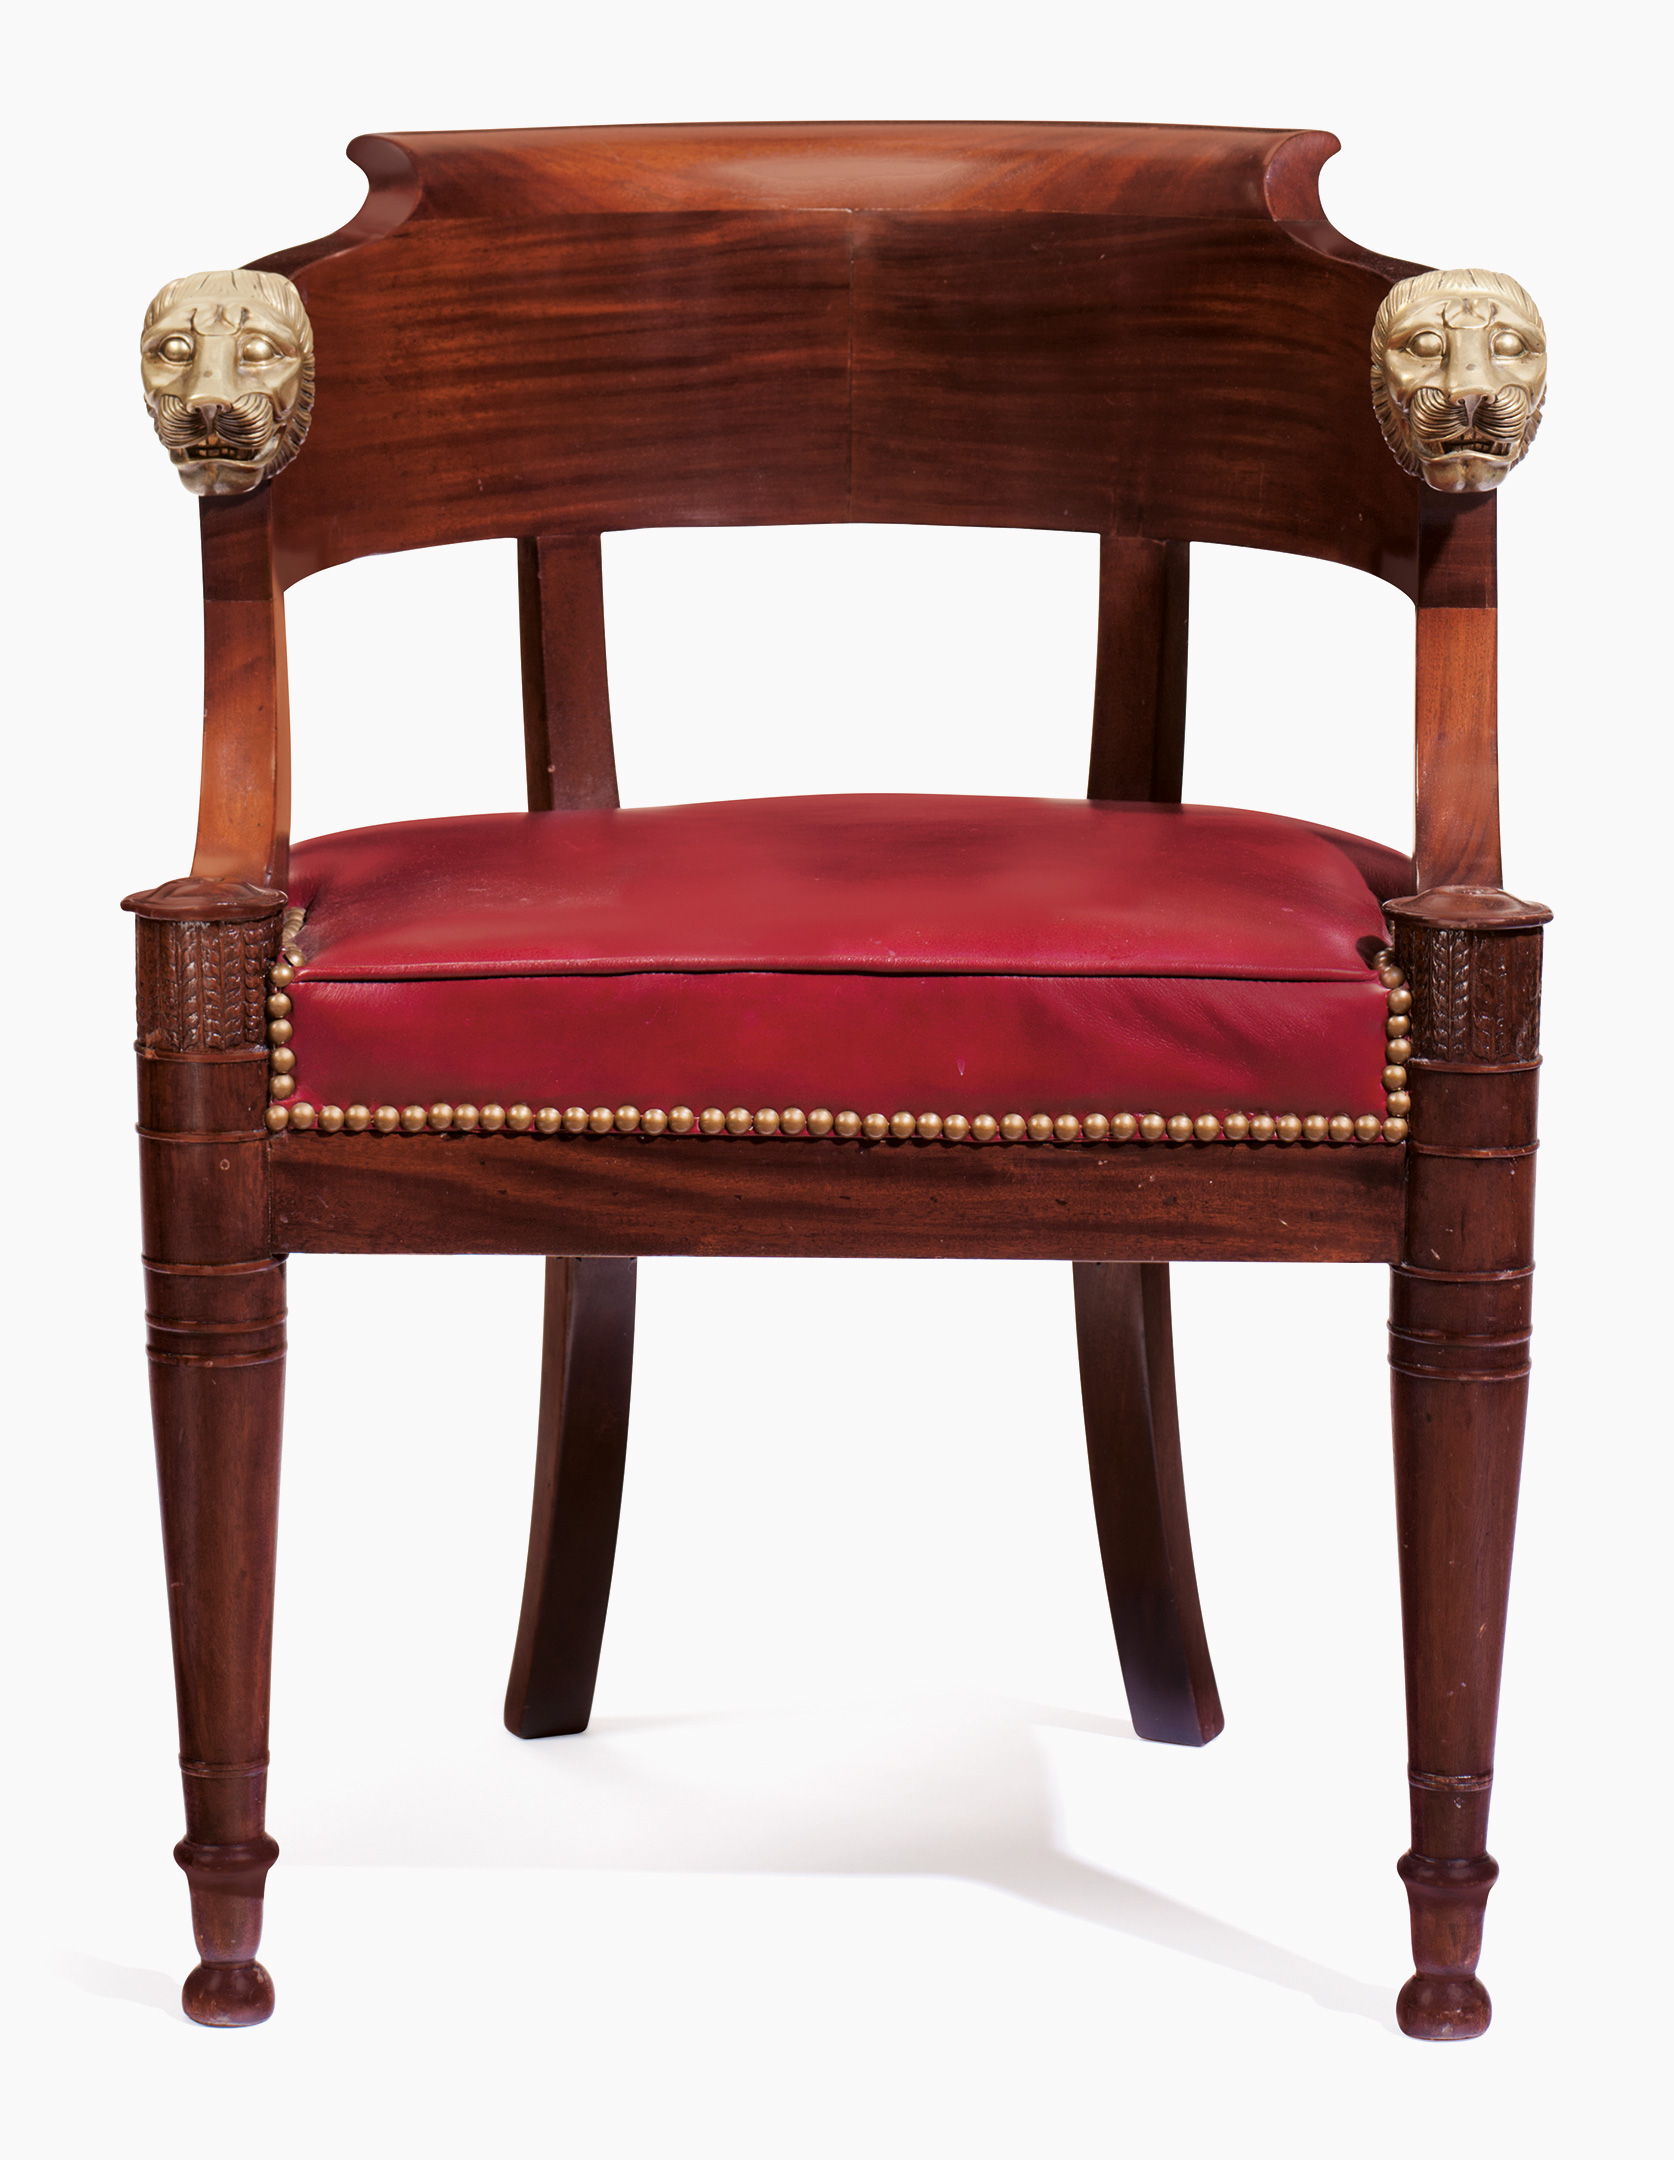 An Empire Ormolu Mounted Mahogany Fauteuil De Bureau. Estimate  $3,000 5,000. This